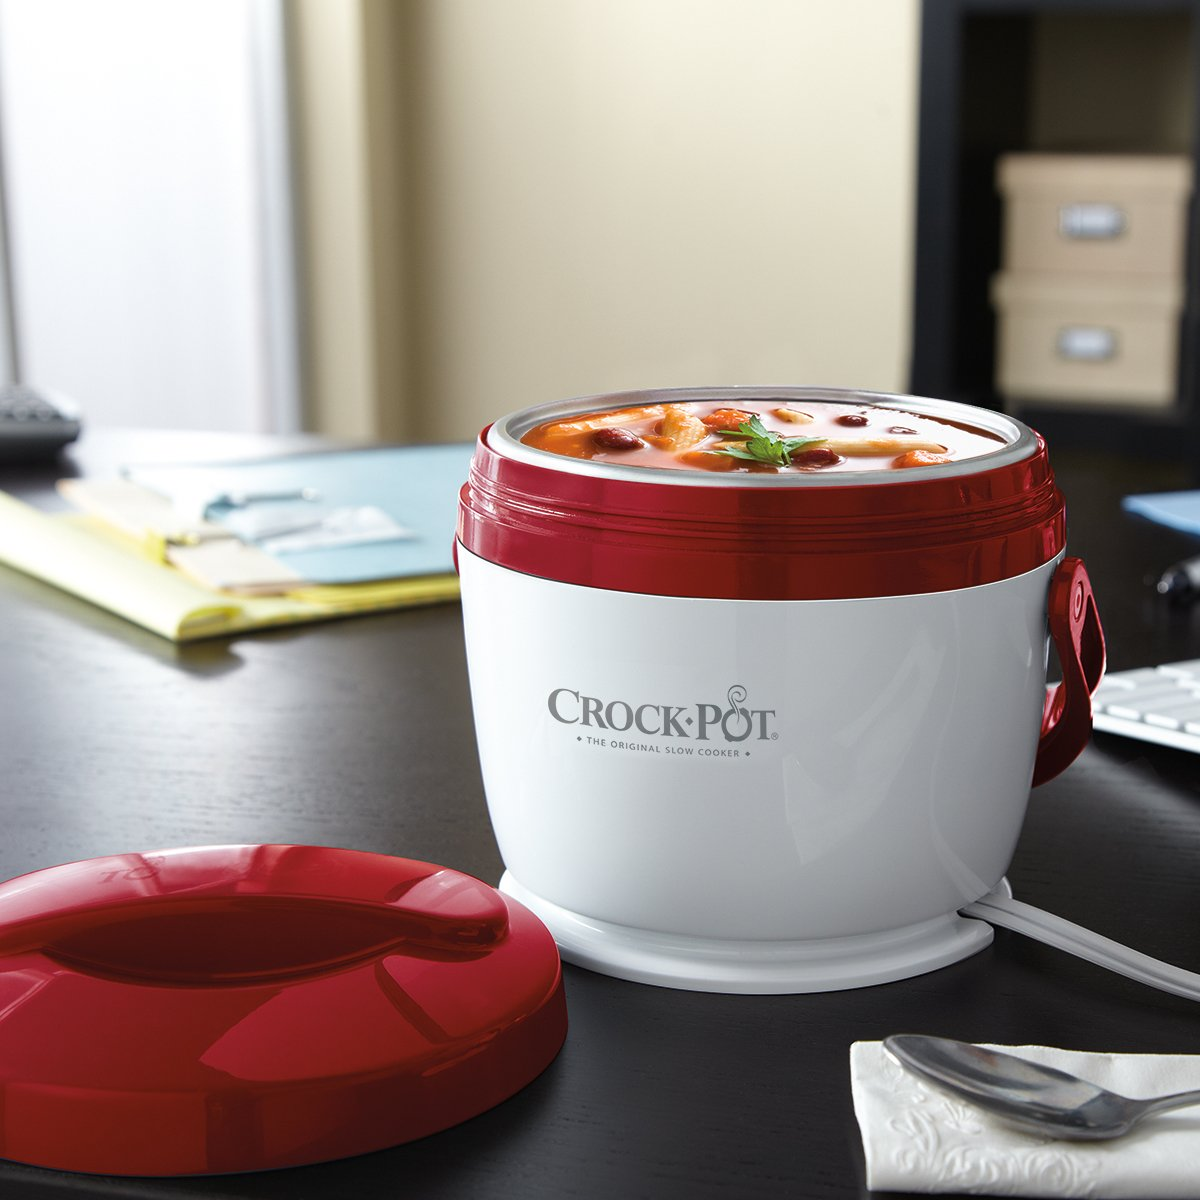 A Portable Mini Crock-pot that gets food ready by the time he gets home - 22 Unusual 1st Anniversary Gift Ideas - TodayWeDate.com